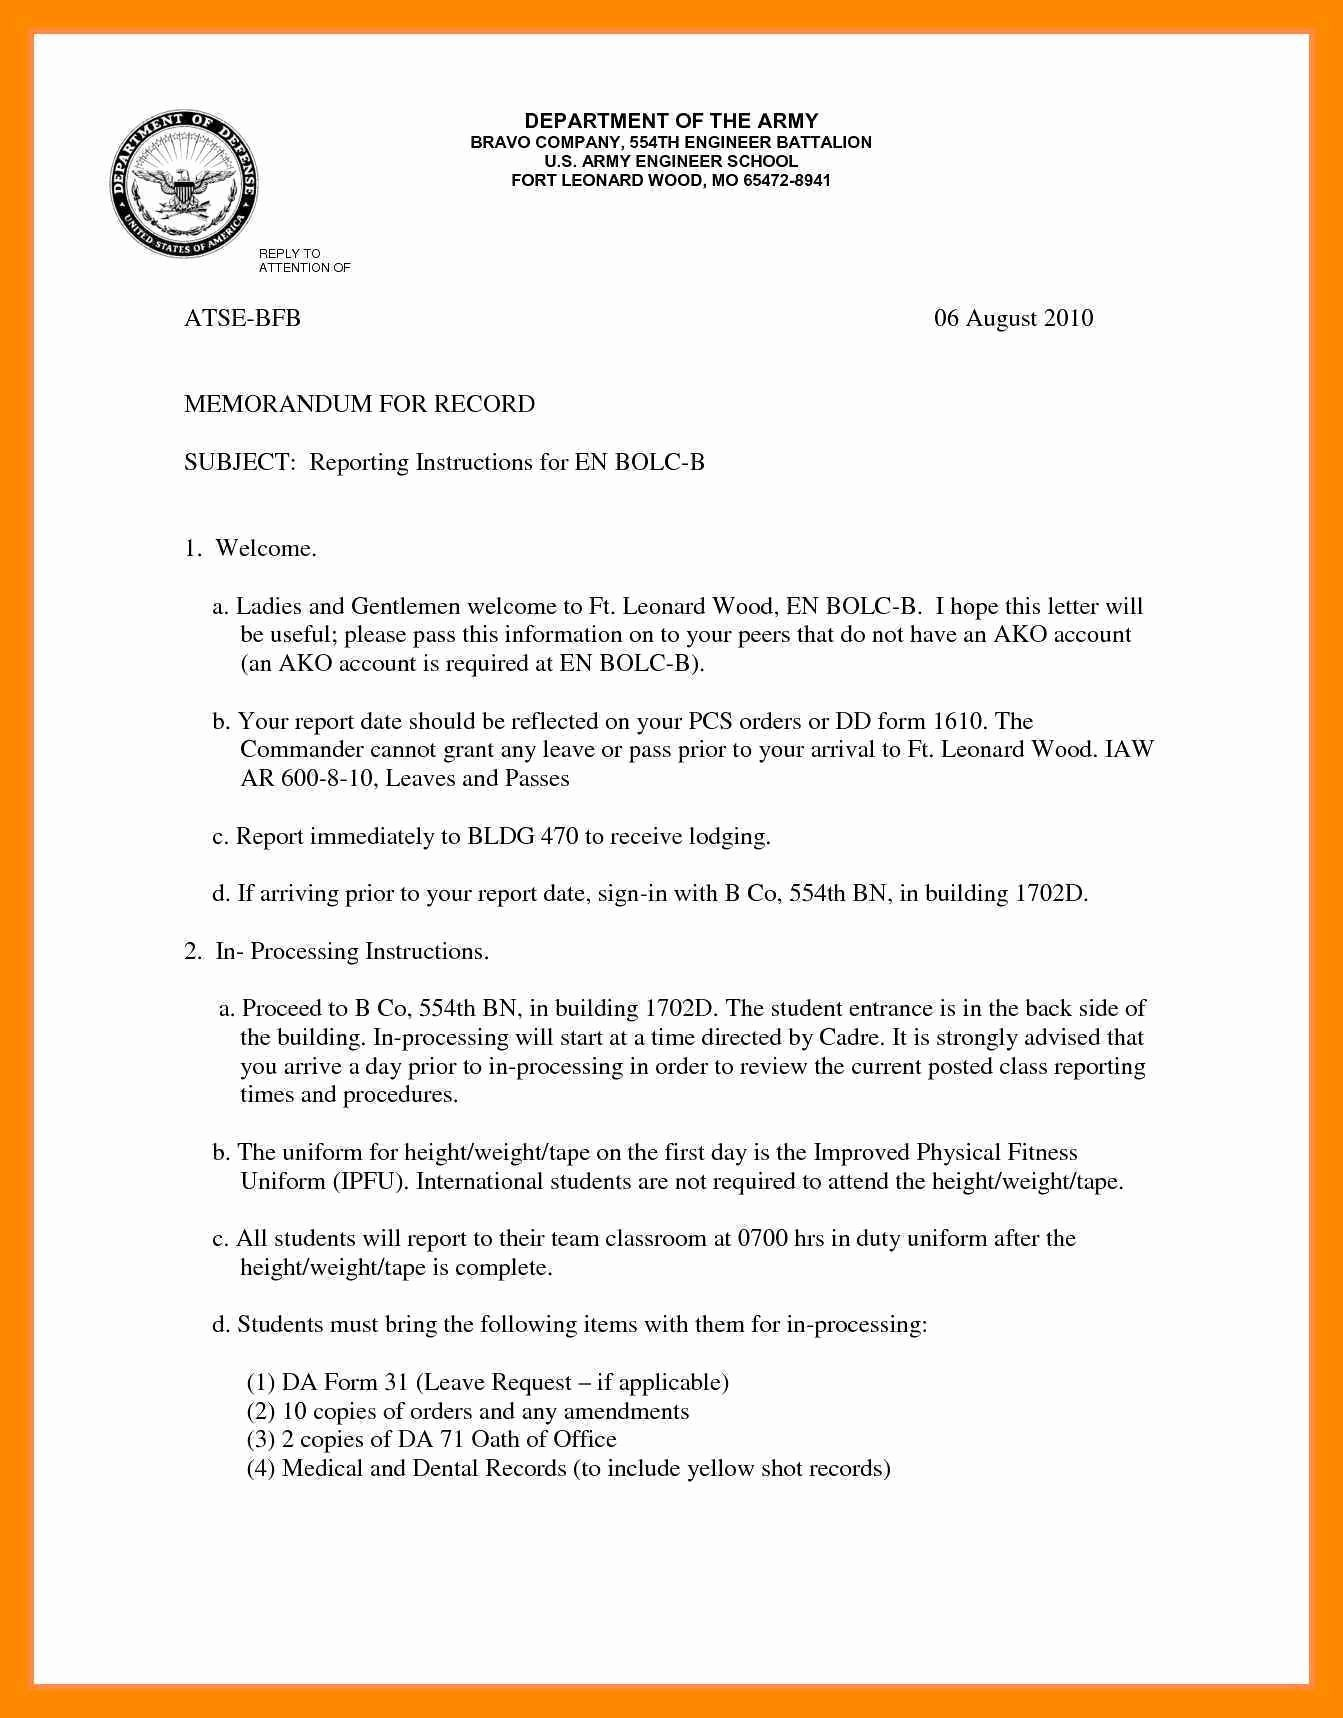 Memo for Record Template Lovely 11 12 Army Memo Example